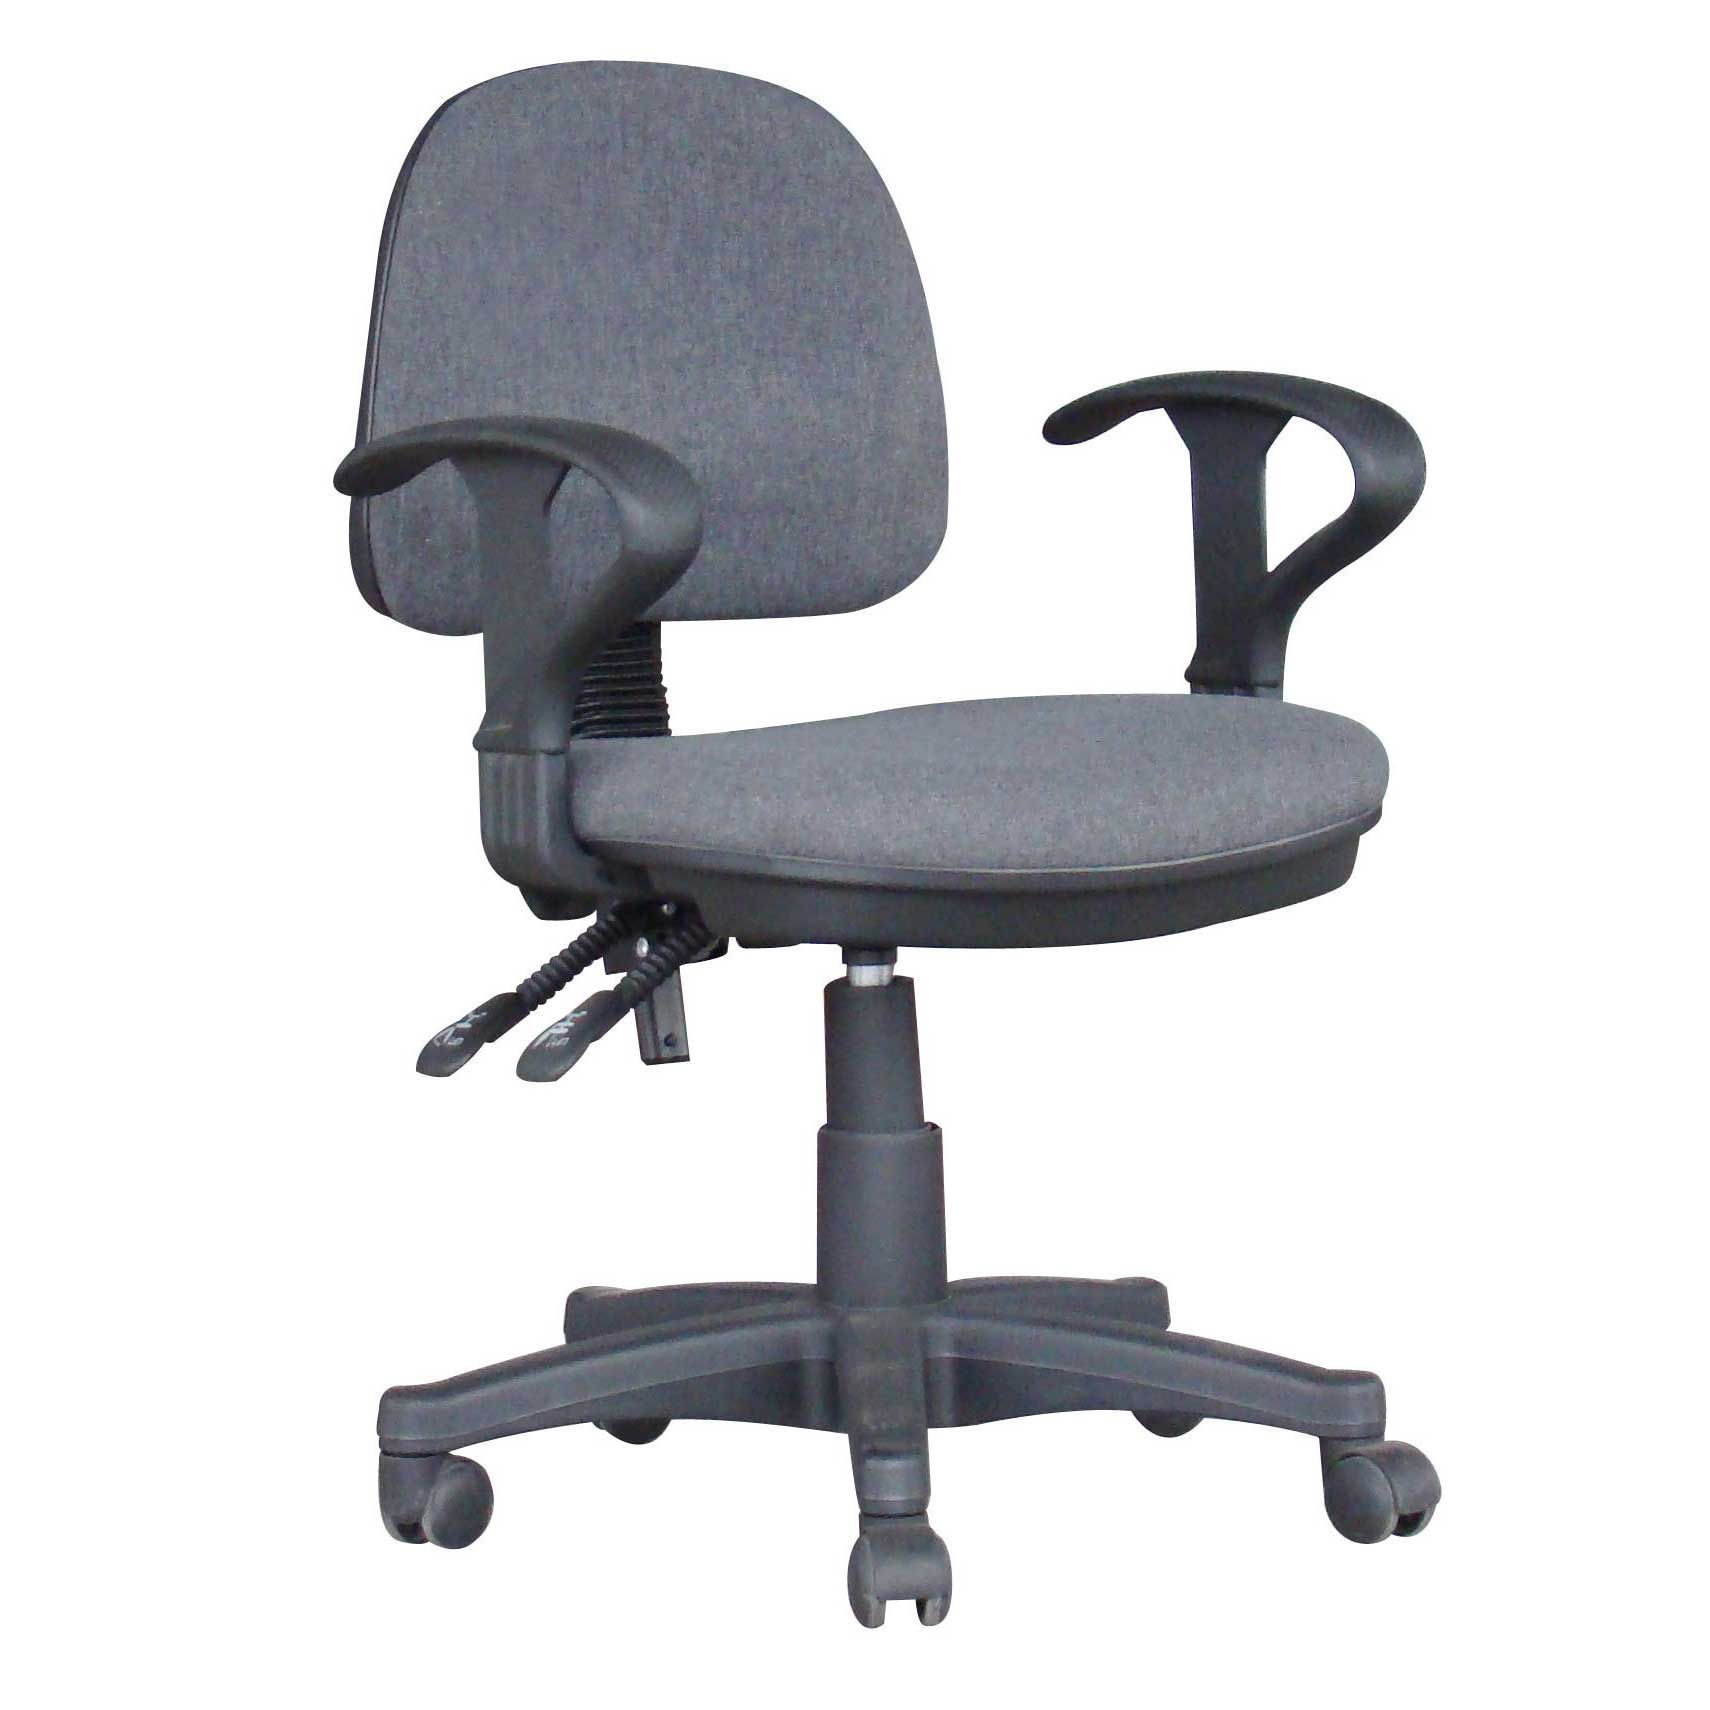 50 Cheapest Place To Buy Office Chairs Cool Rustic Furniture